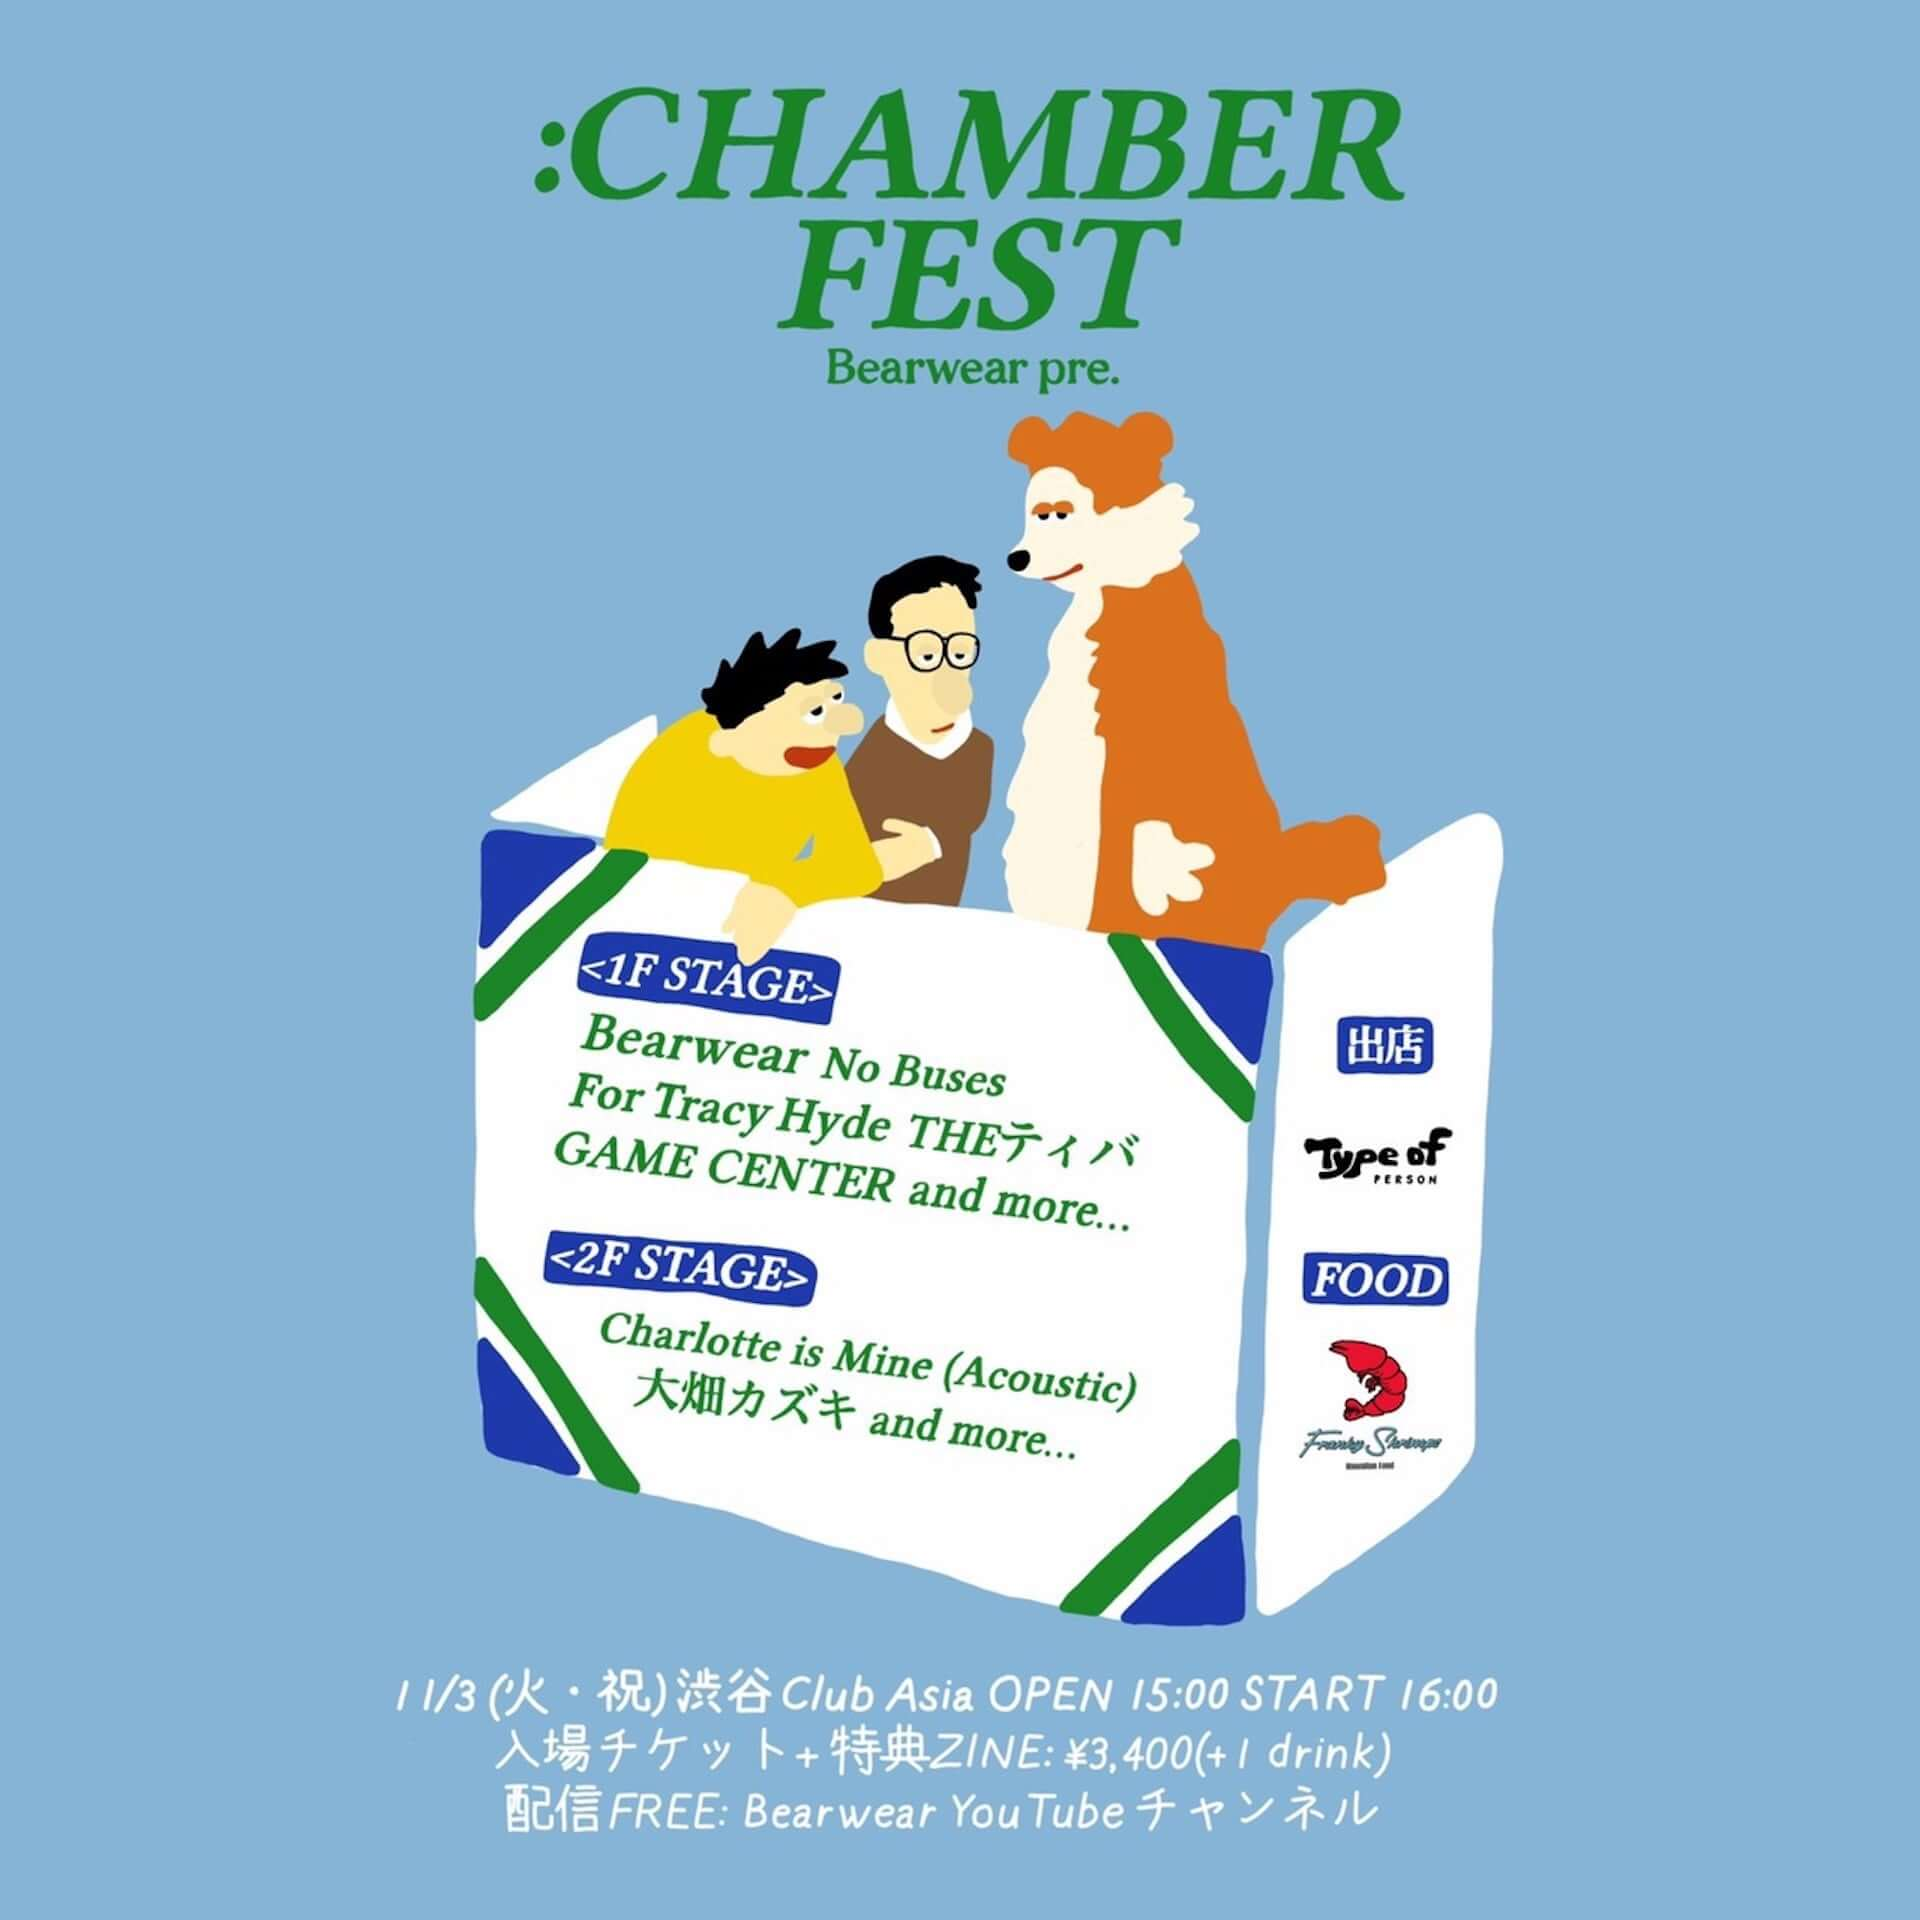 Bearwear主催<:CHAMBER FEST>にNo Buses、For Tracy Hydeが出演決定!渋谷clubasiaより無料生配信も実施 music201015_chamberfest_7-1920x1920